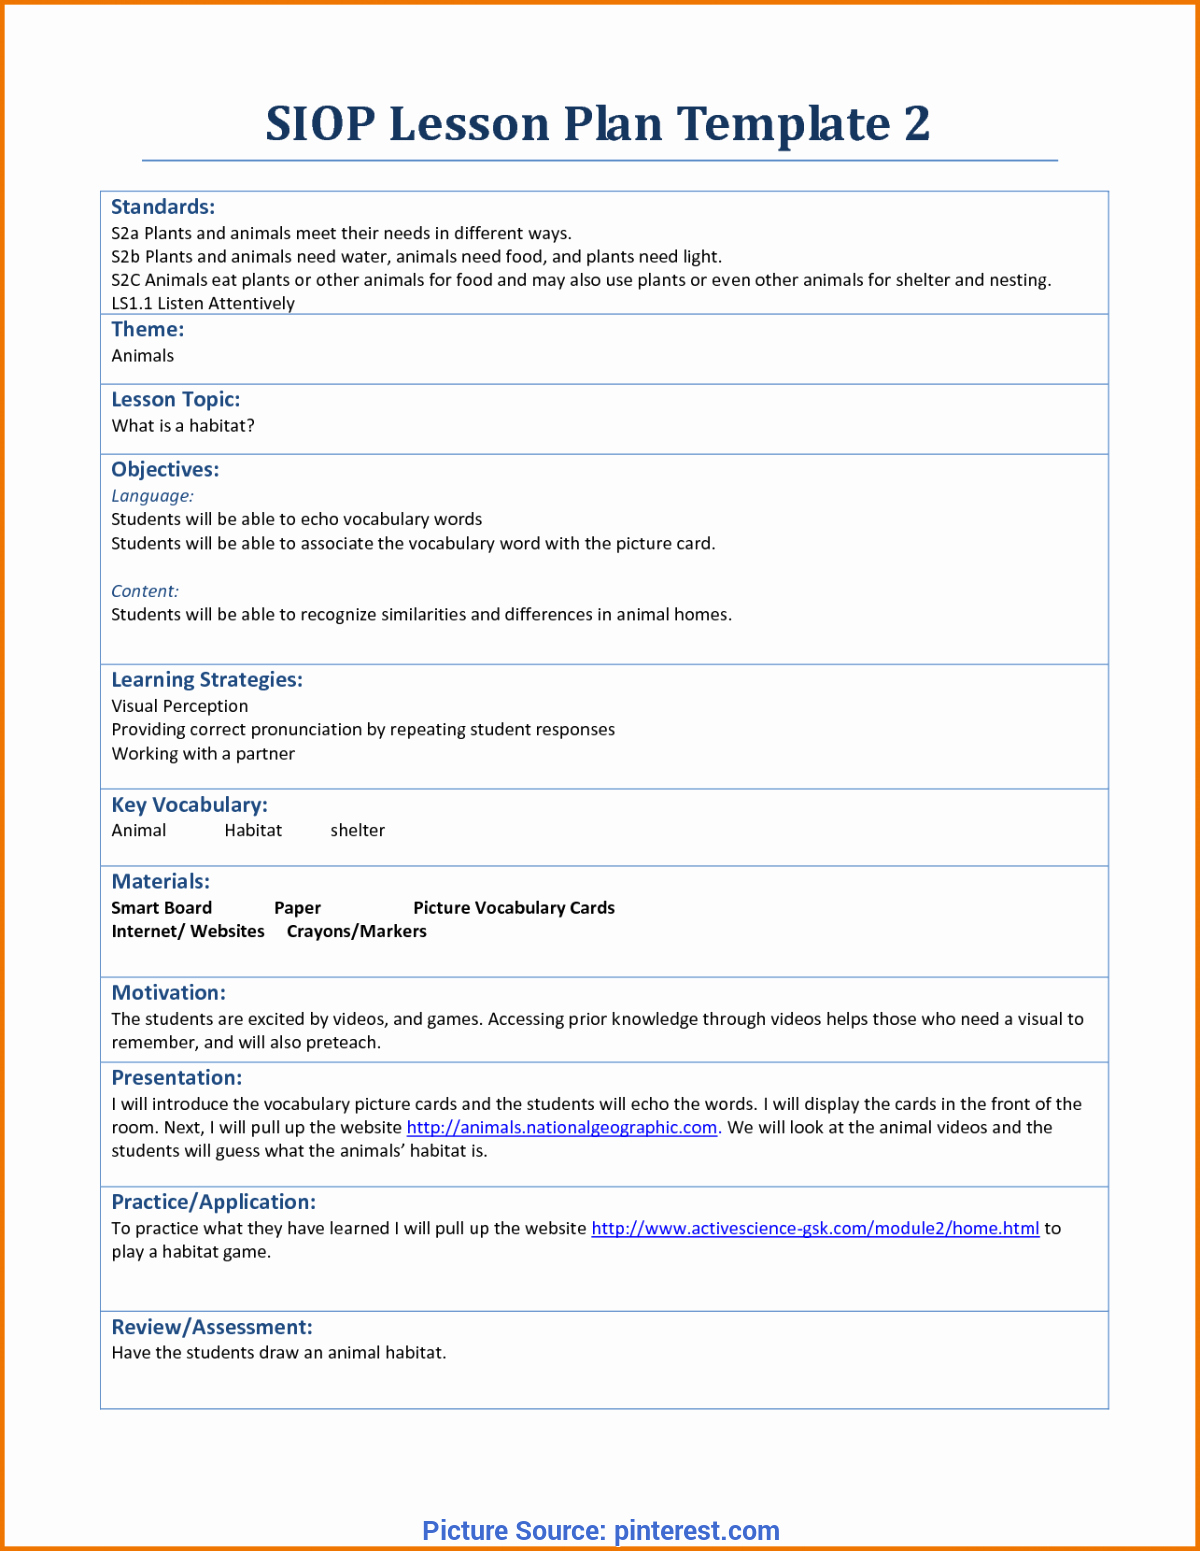 Siop Lesson Plan Template 3 Luxury Fresh Siop Lesson Plan Template 3 Example Siop Lesson Plan Template 2 Doc